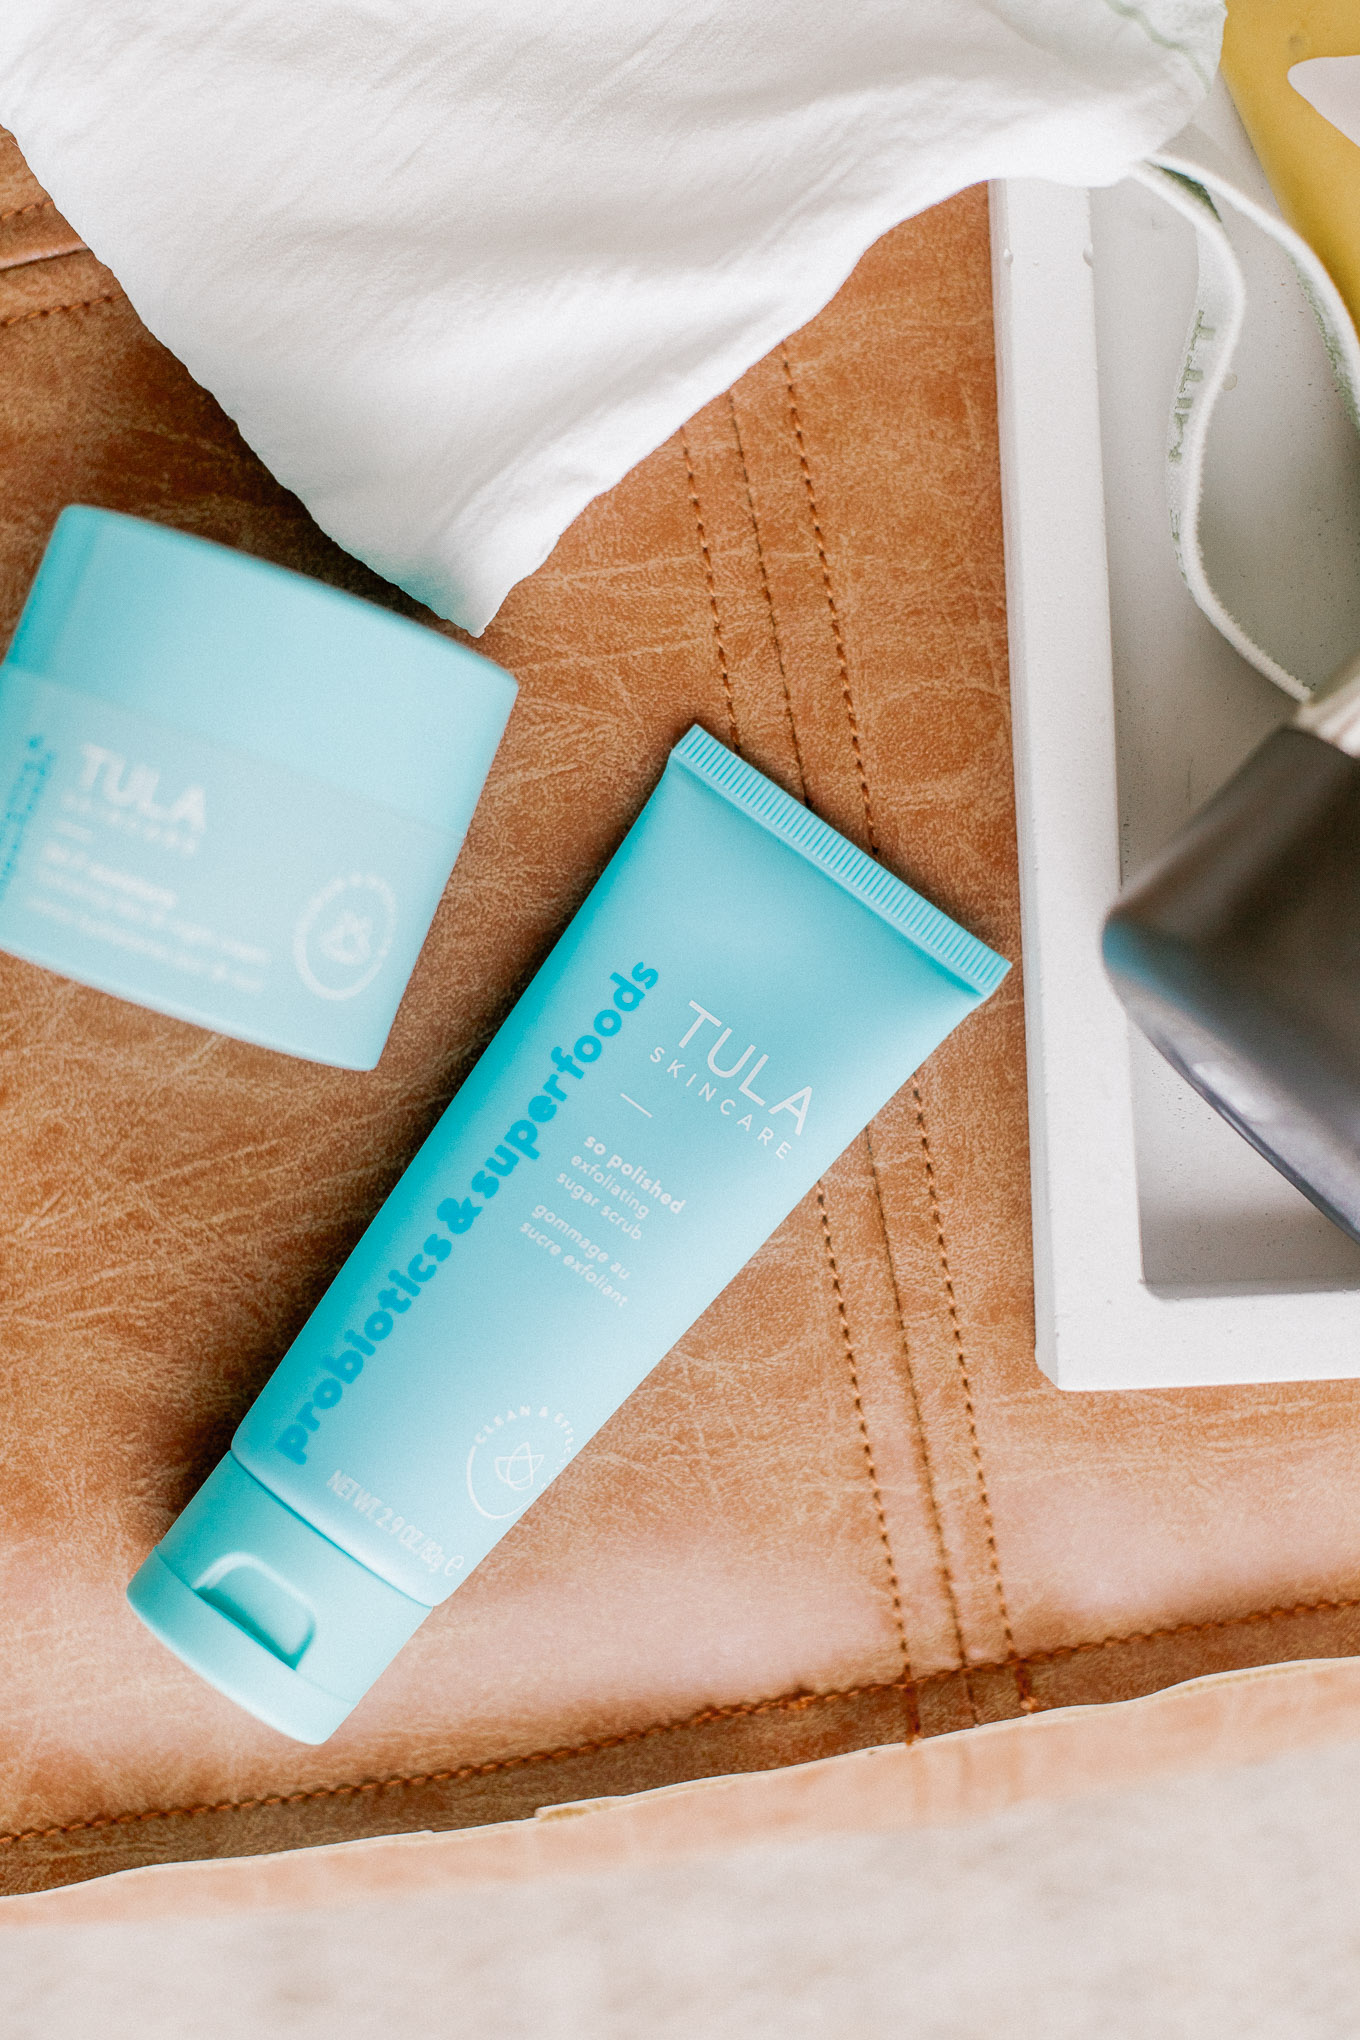 Gentle Exfoliator   Clean Beauty Products   TULA Review   Louella Reese